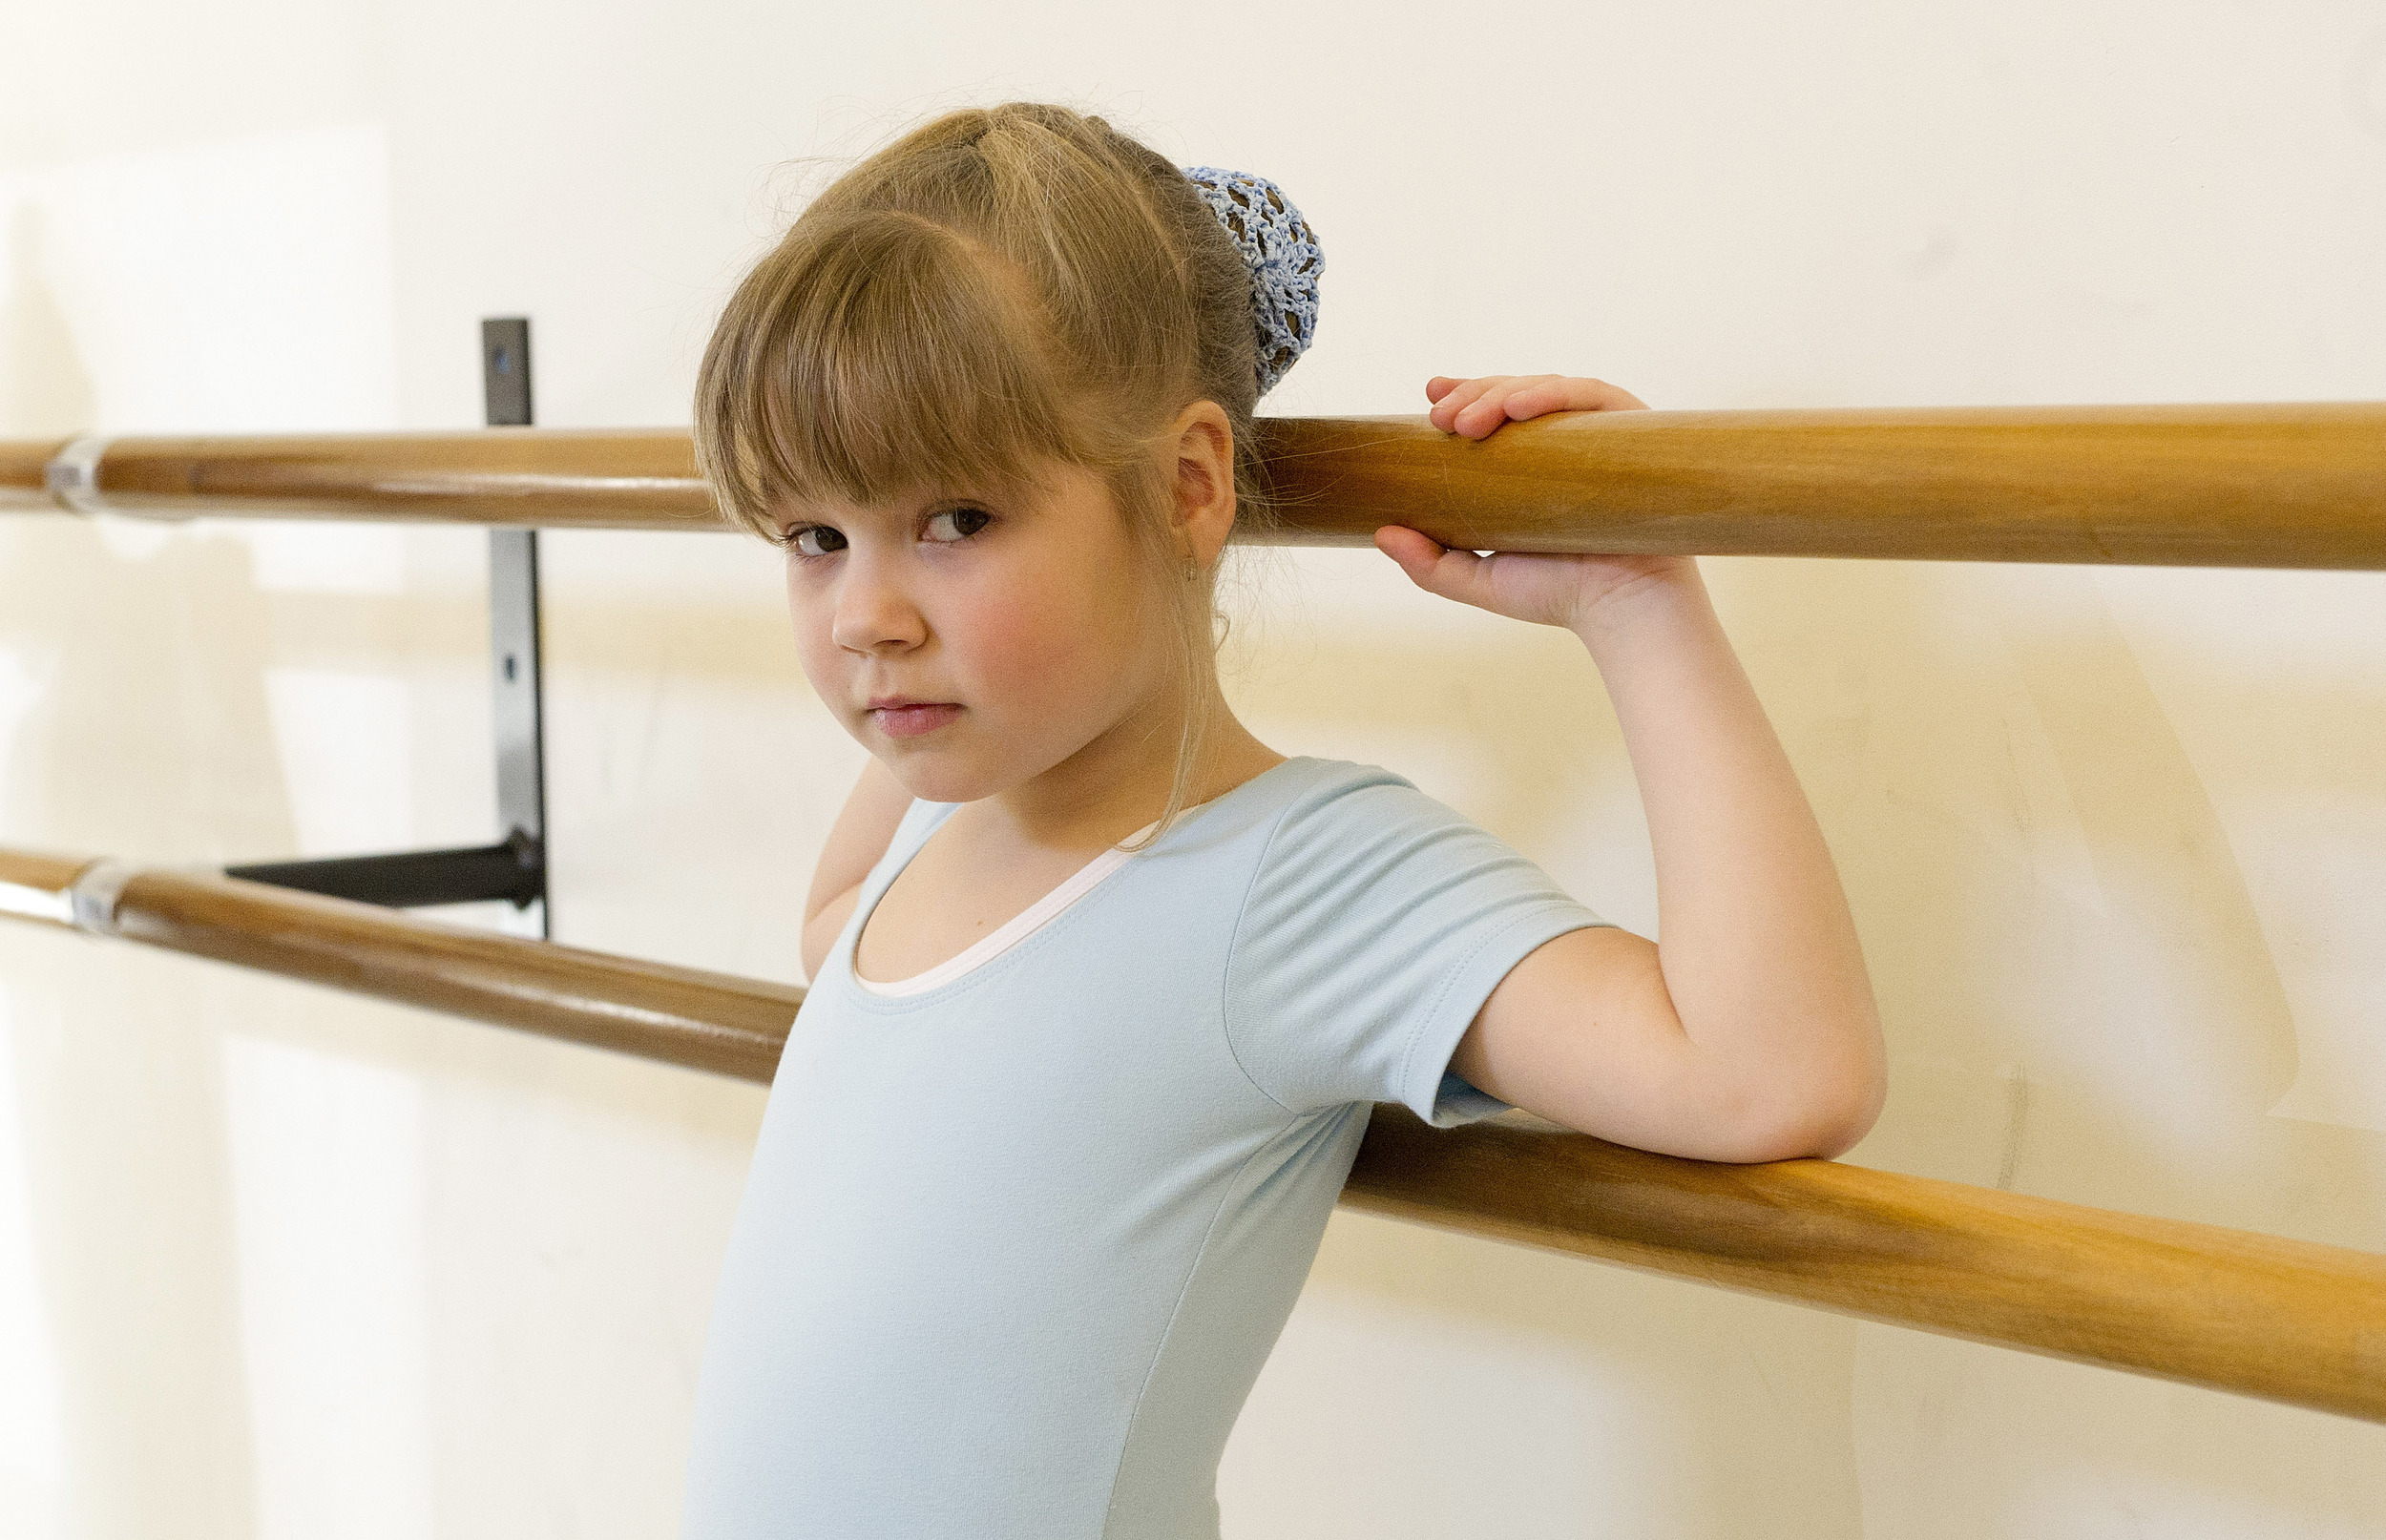 Mariya Pychil practices ballet during a lesson at The Ballet School of Stamford on Thursday, March 14, 2014. The school is a recipient of a grant from the Community Arts Partnership Program.